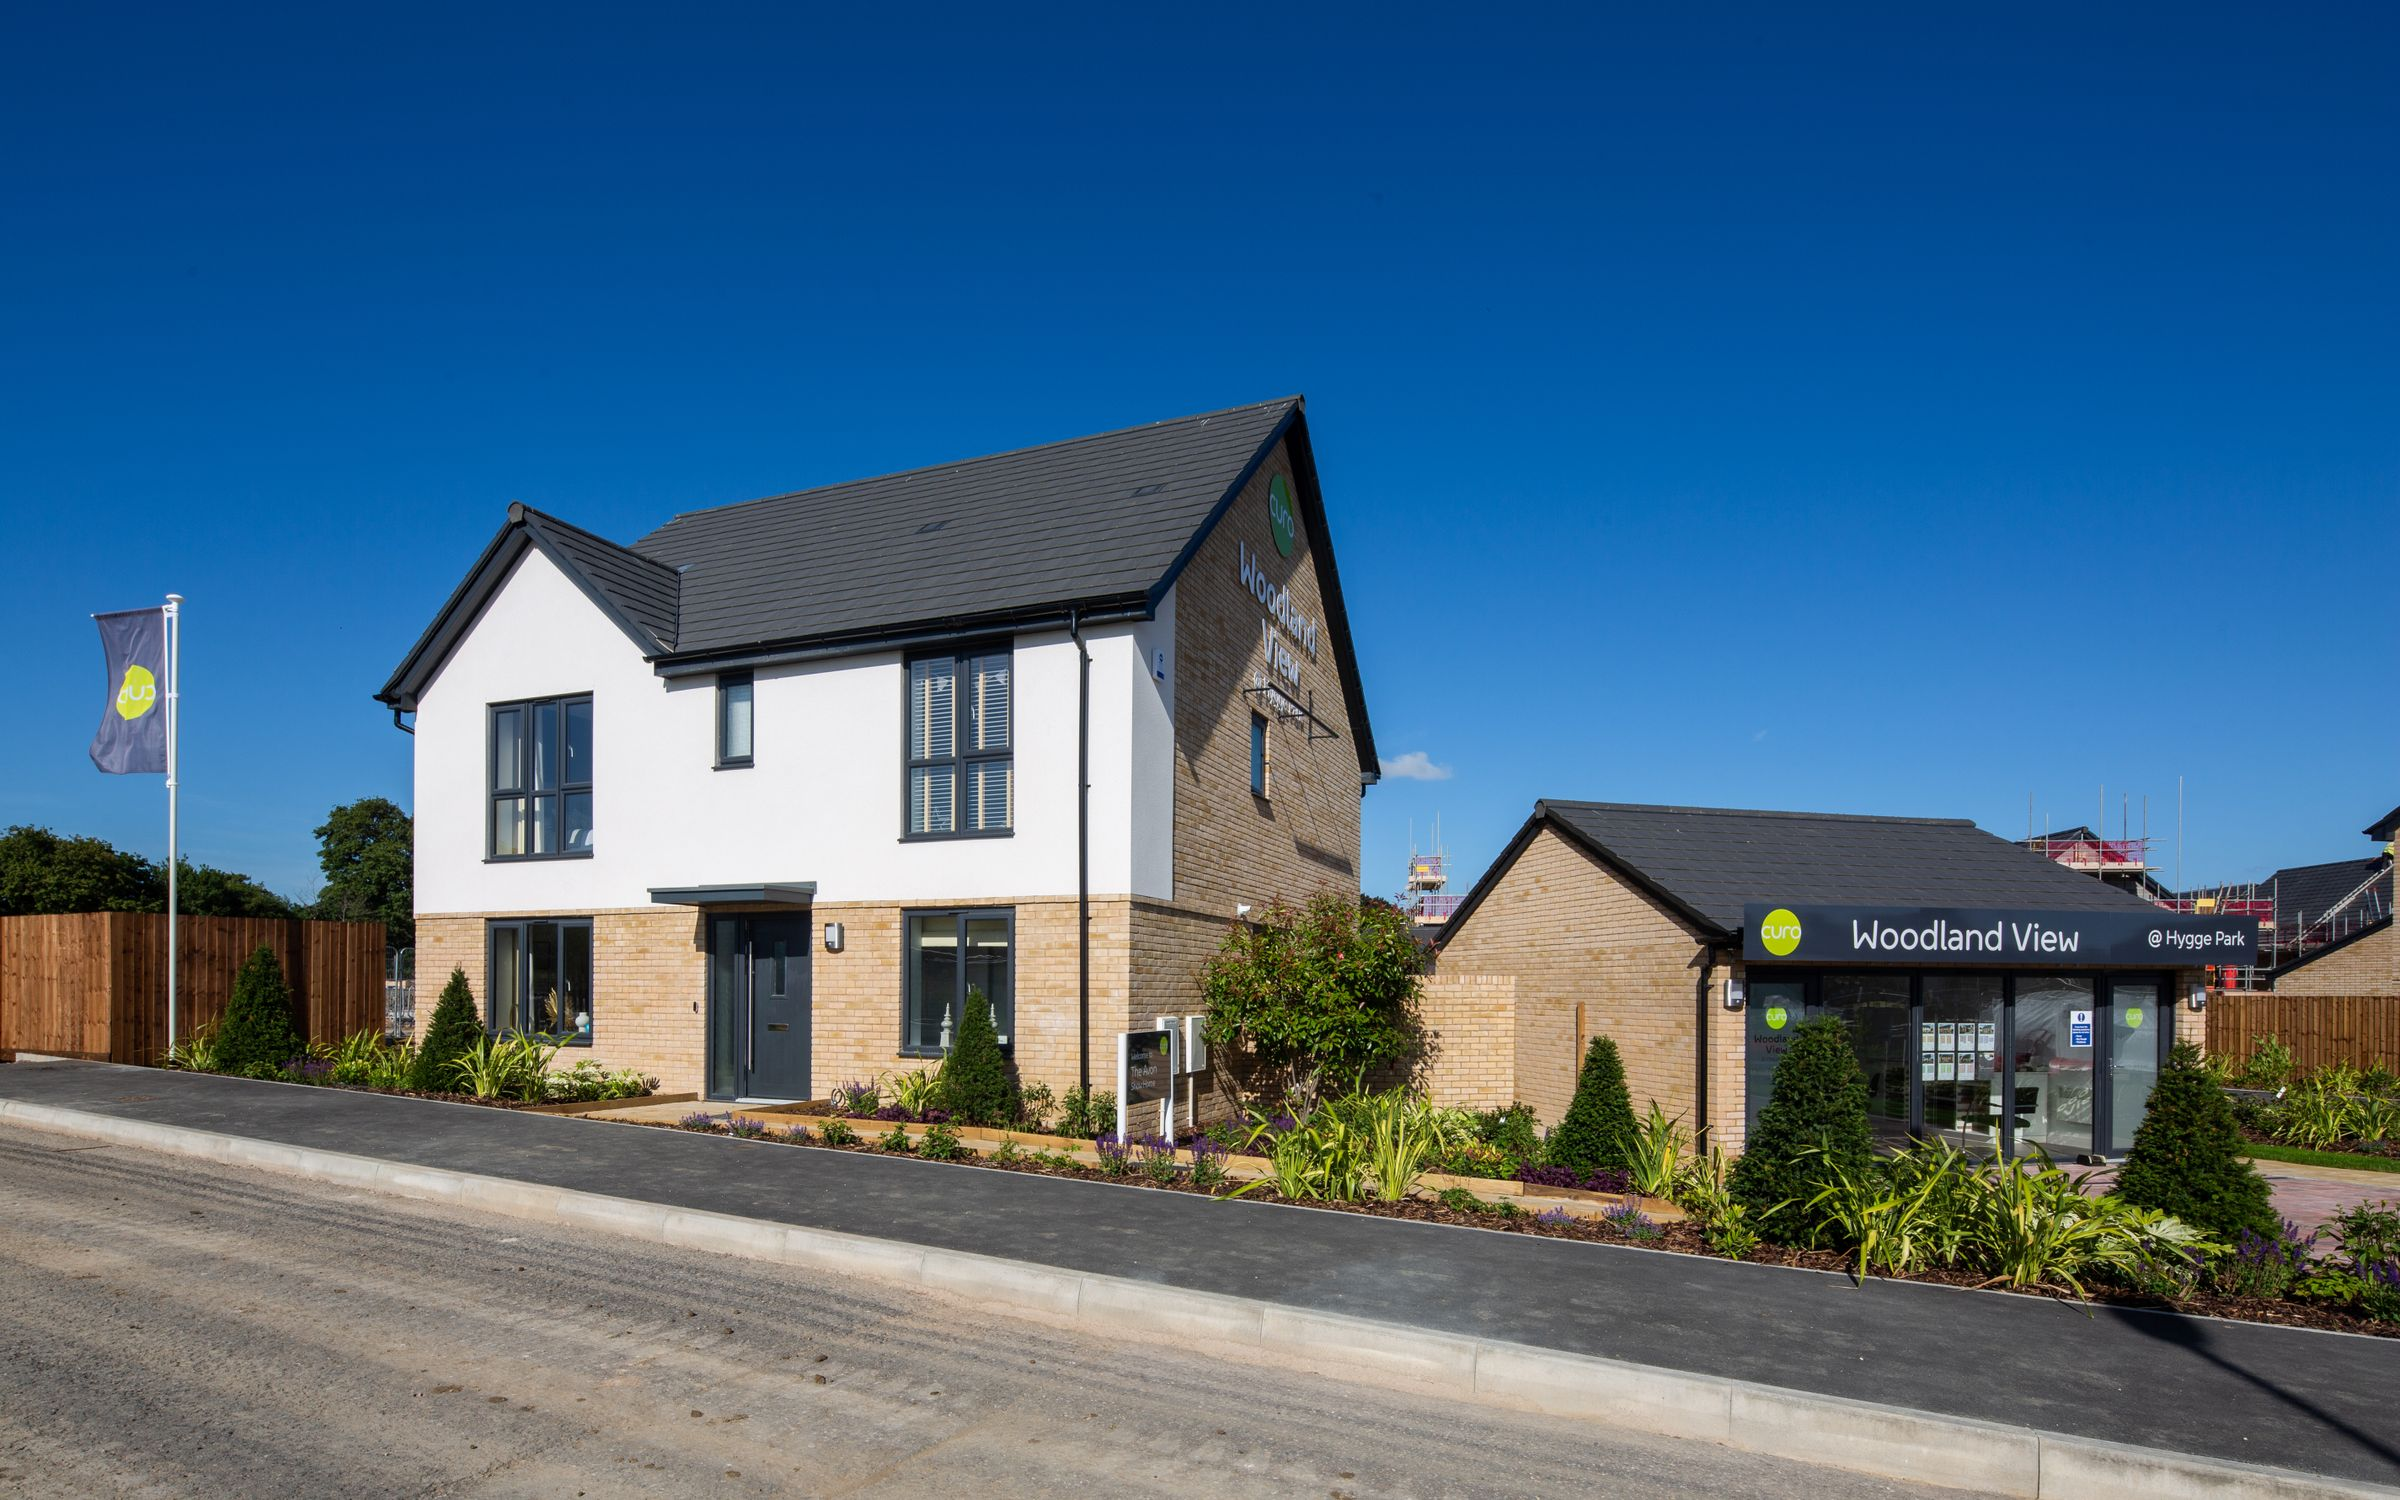 Property photo 1 of 11. The Avon Show Home